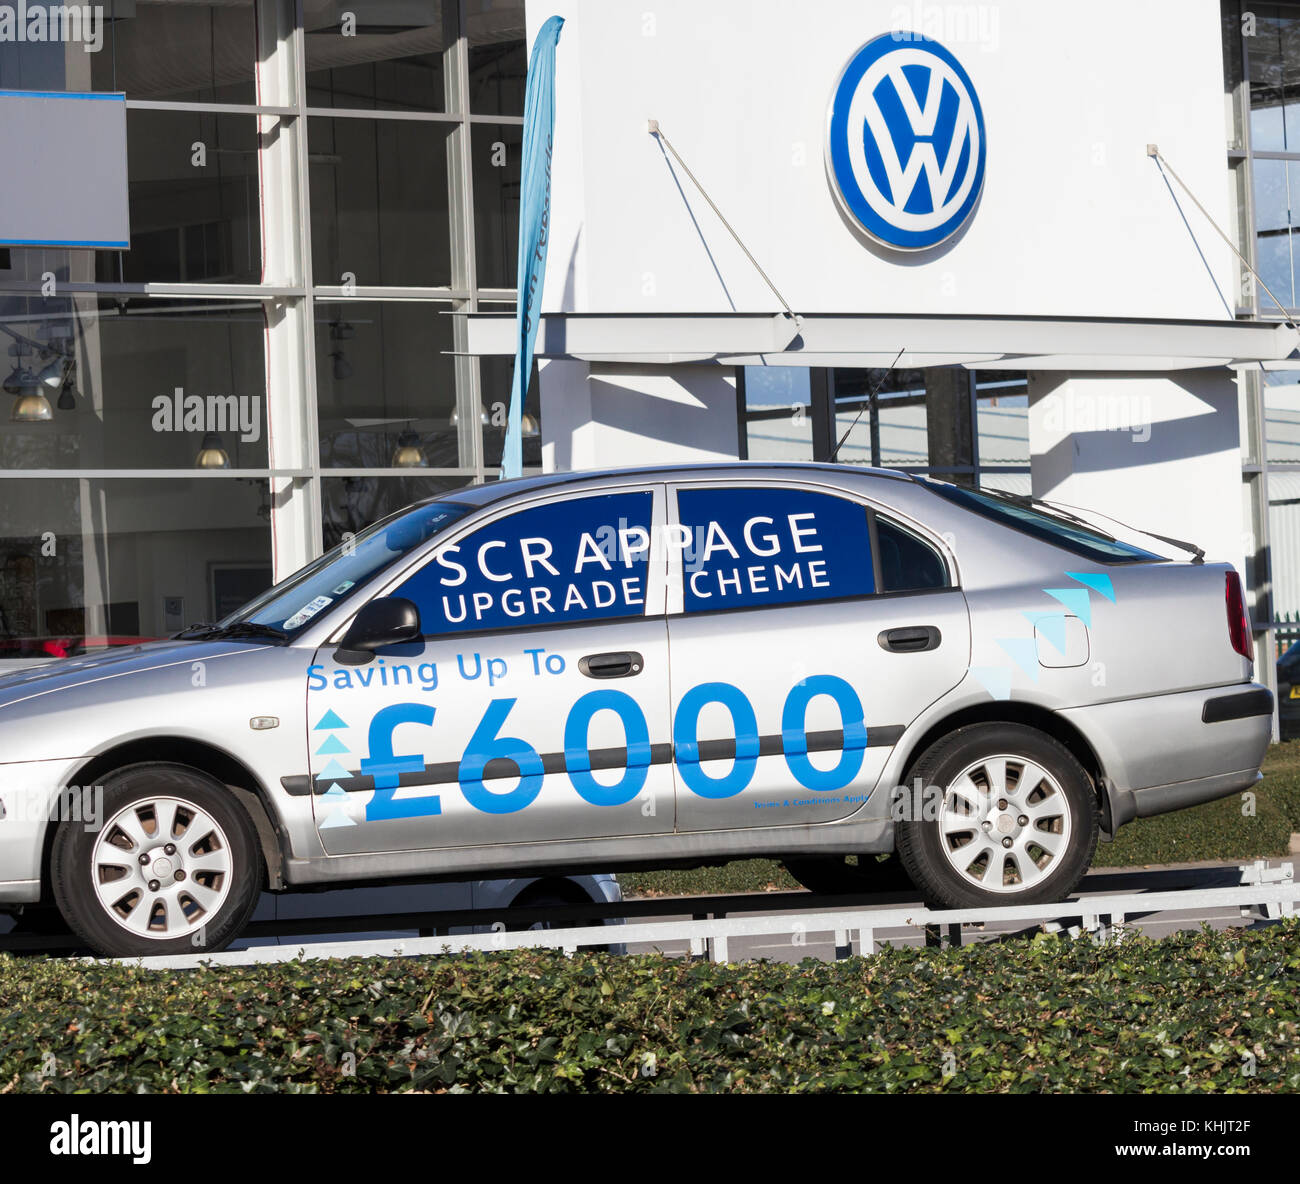 Volkswagen Dealership: New Cars Uk Stock Photos & New Cars Uk Stock Images